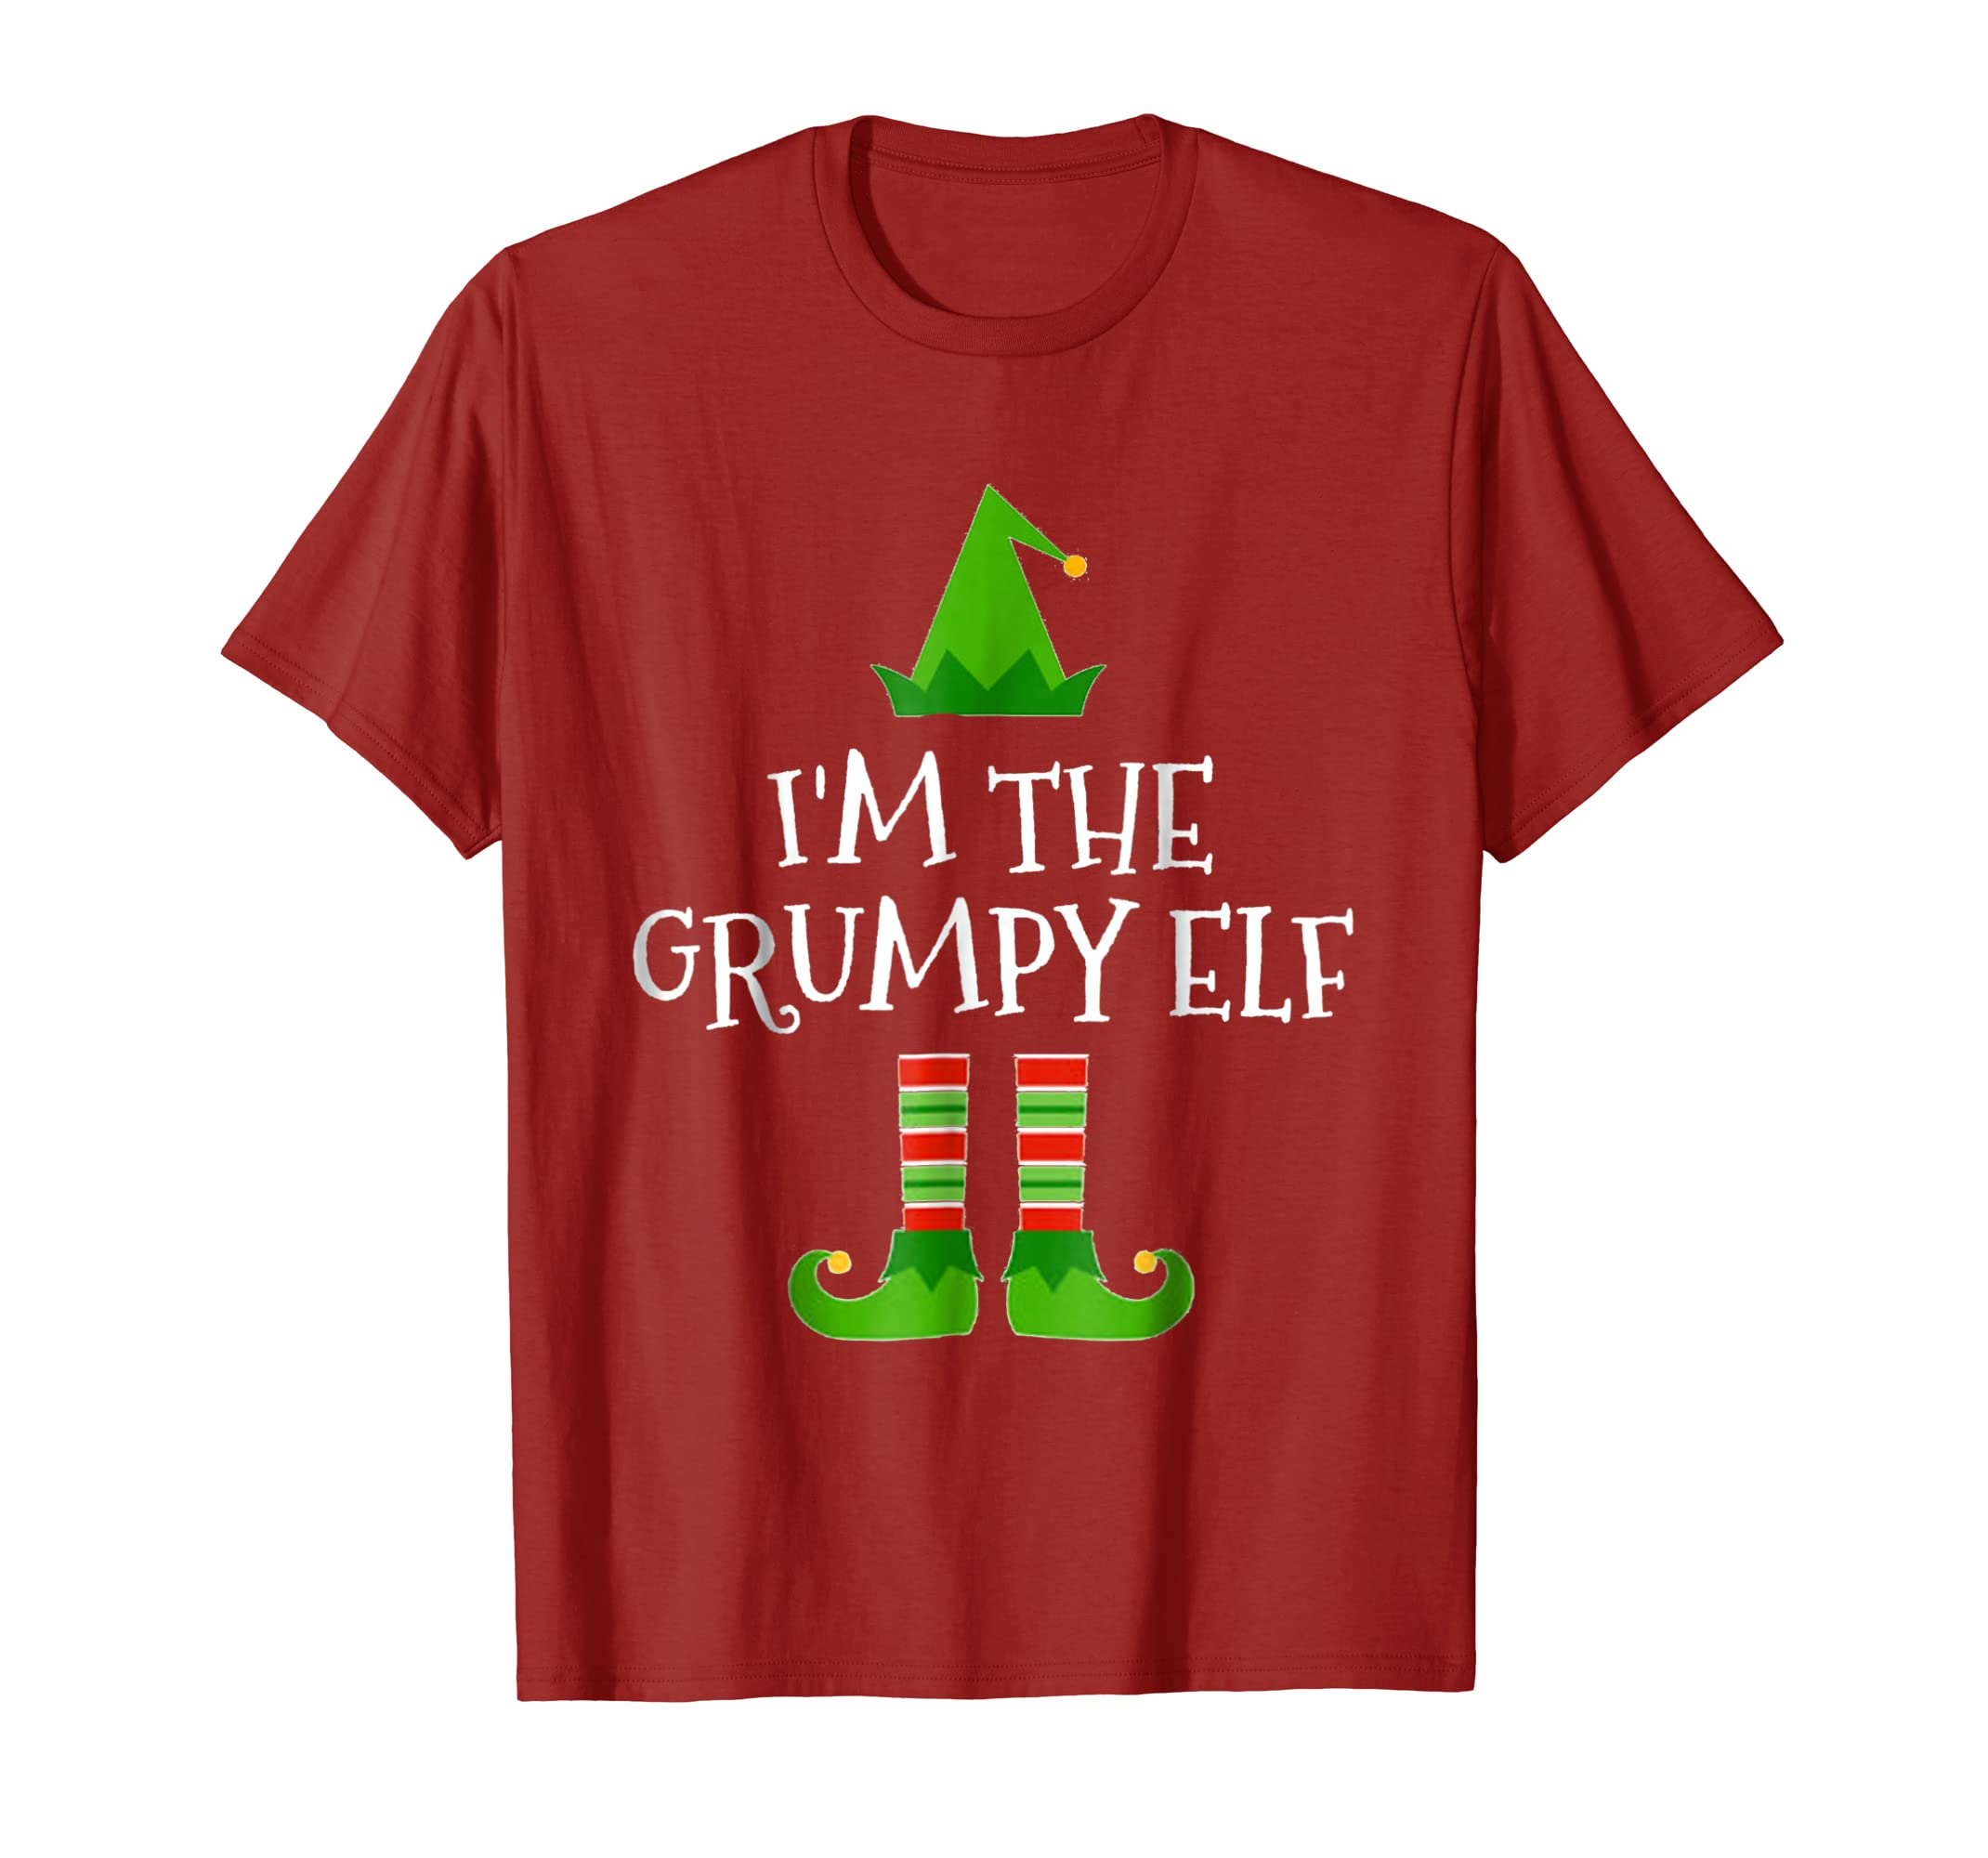 ccbba29e9 Amazon.com: I'm The Grumpy Elf Matching Family Group Christmas T Shirt:  Clothing